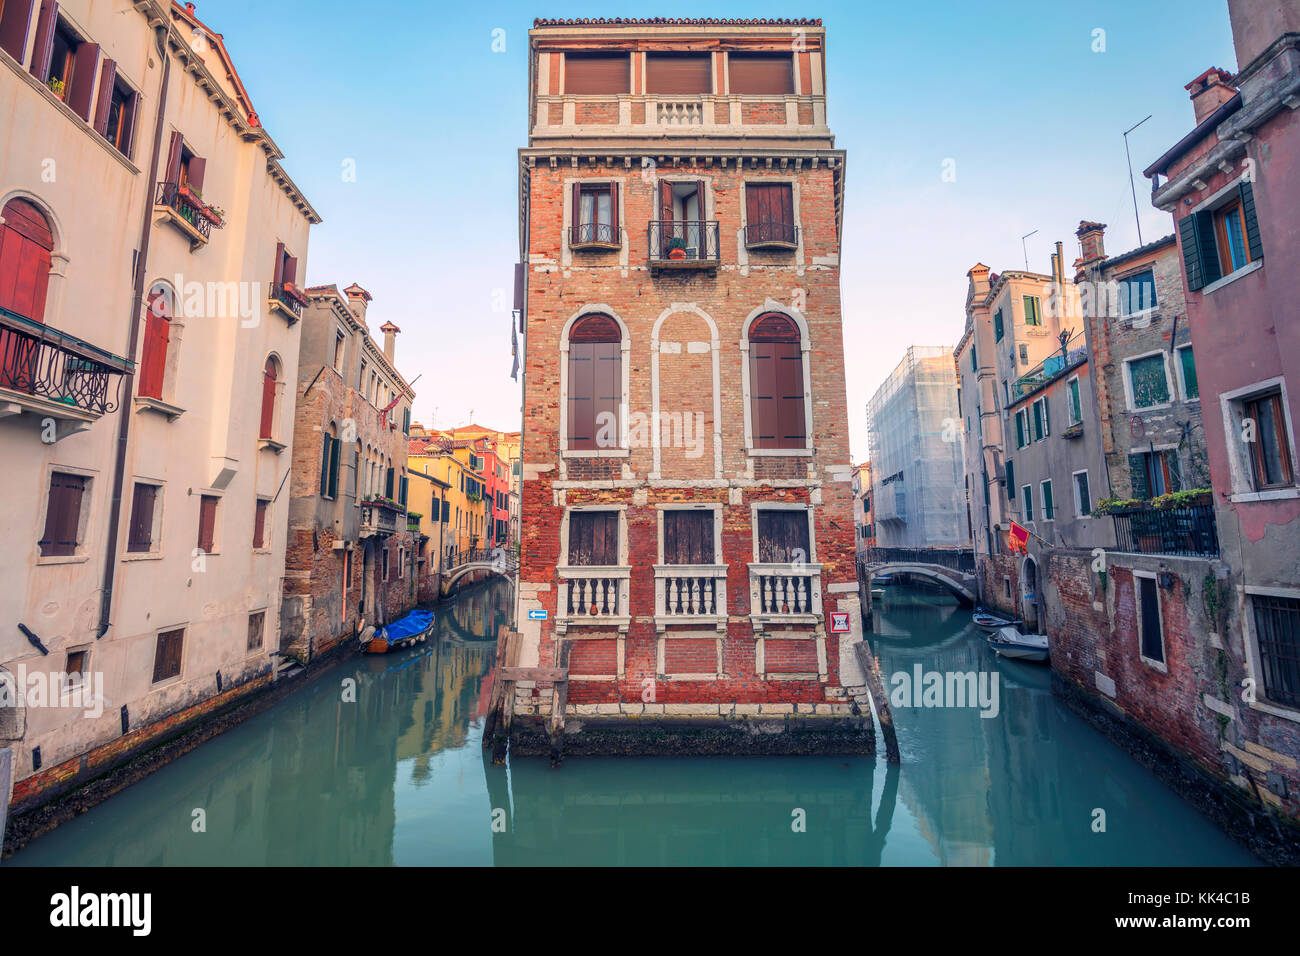 Venice. Cityscape image of narrow canals in Venice during sunset. - Stock Image